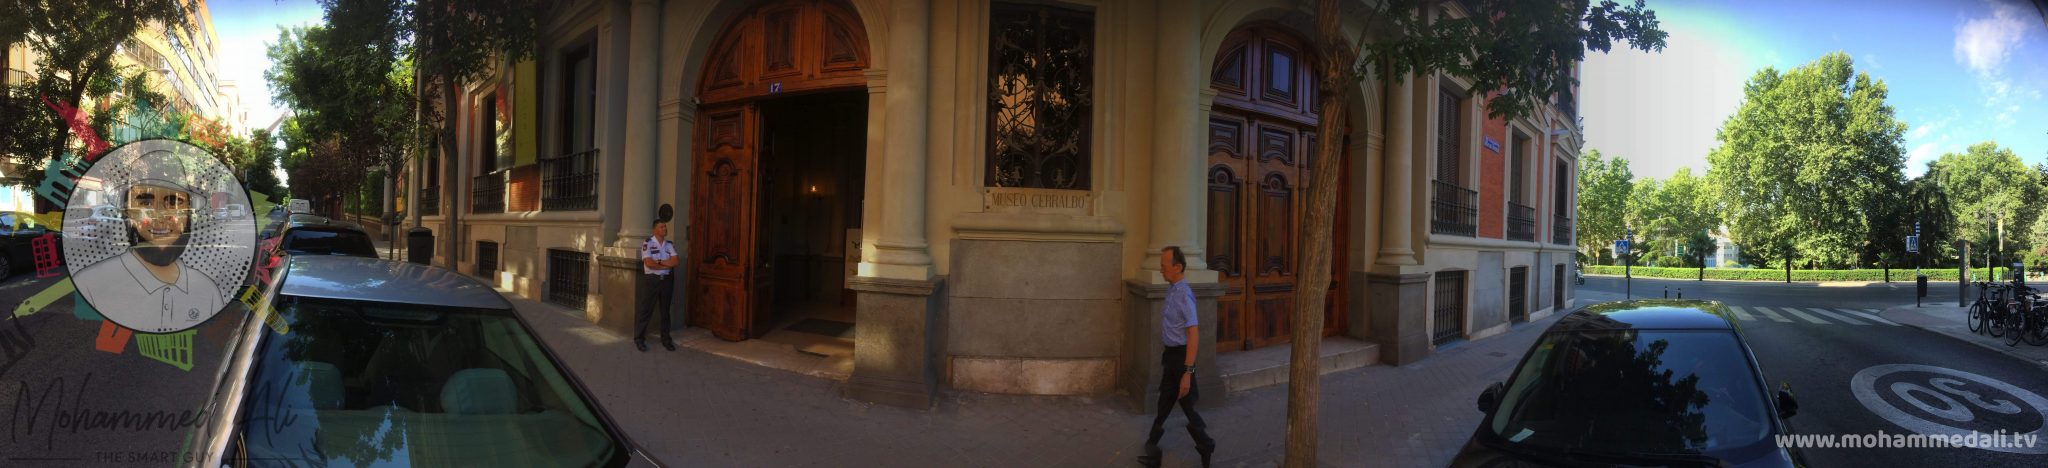 Panoramic view outside of the Cerralbo Museum